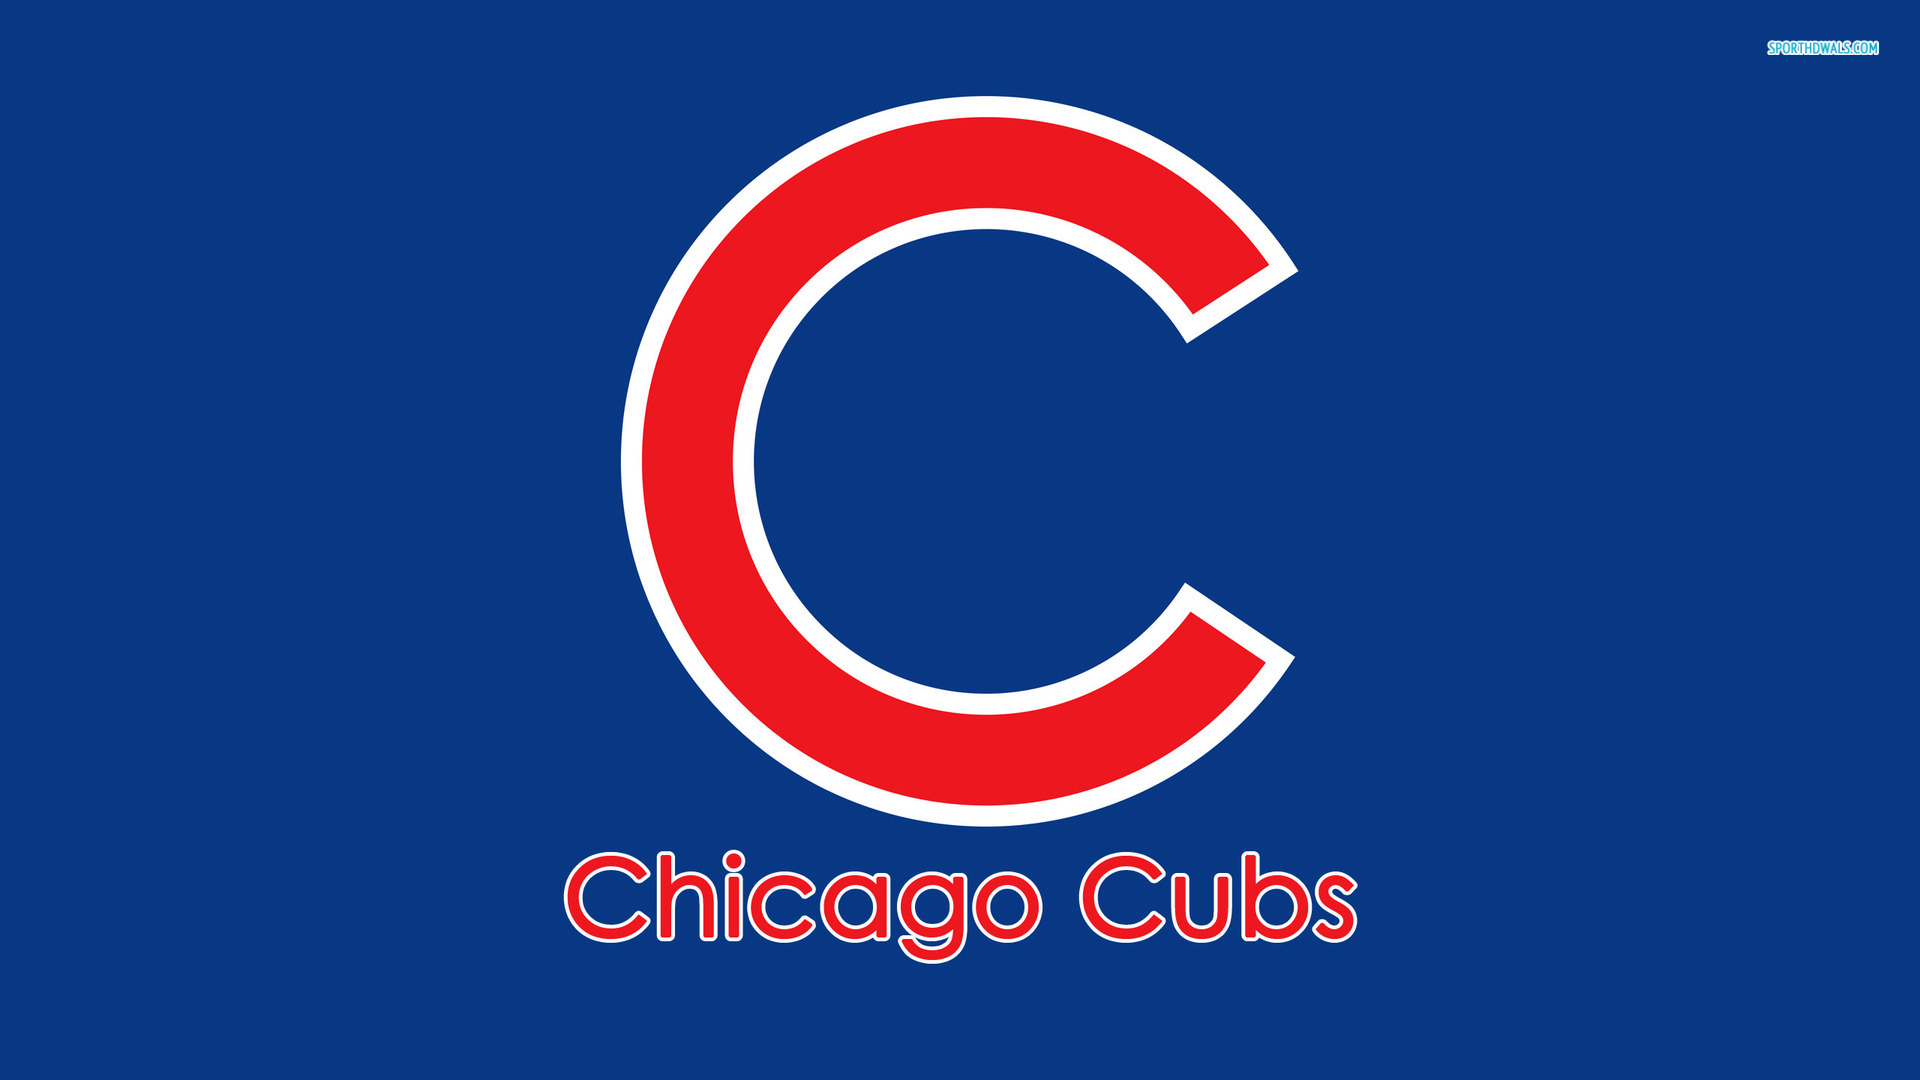 Chicago Cubs Clip Art   Clipartsco 1920x1080